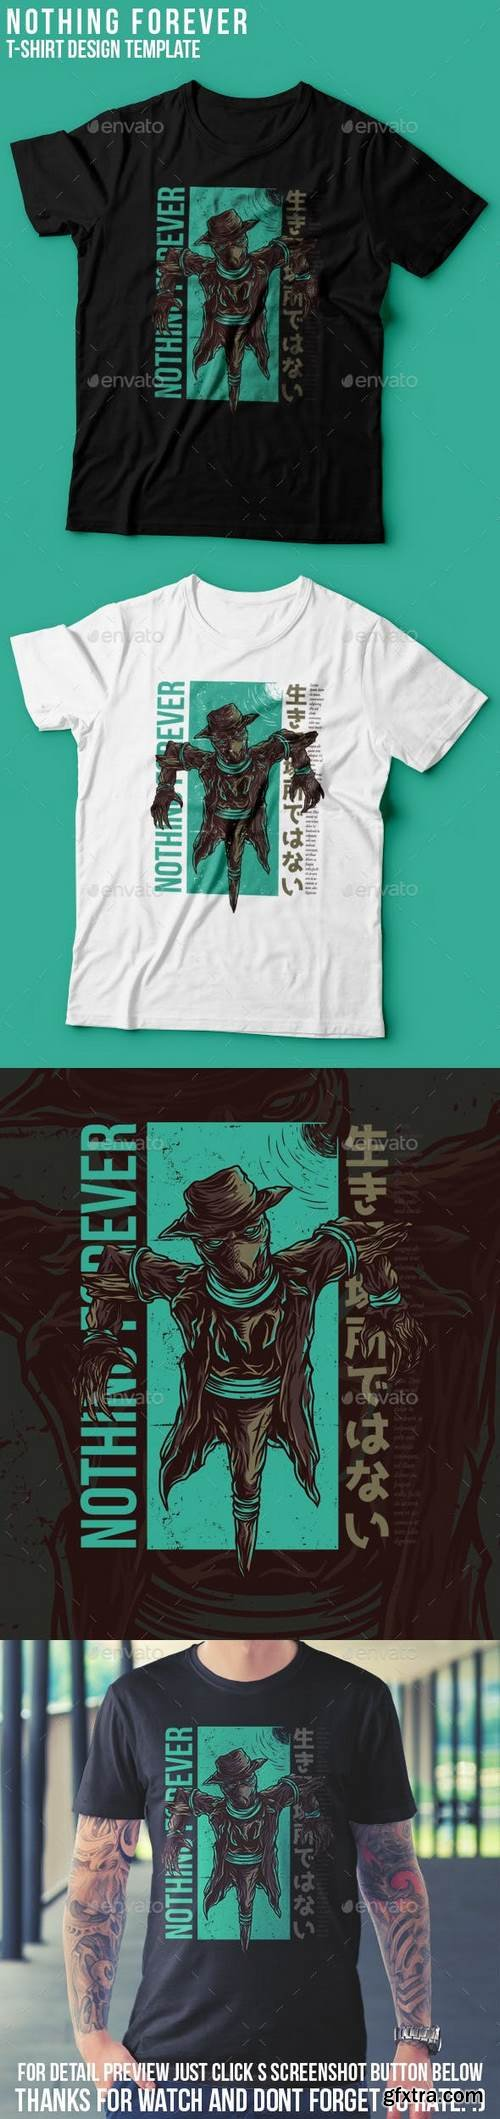 Graphicriver - Nothing Forever T-Shirt Design 22939344